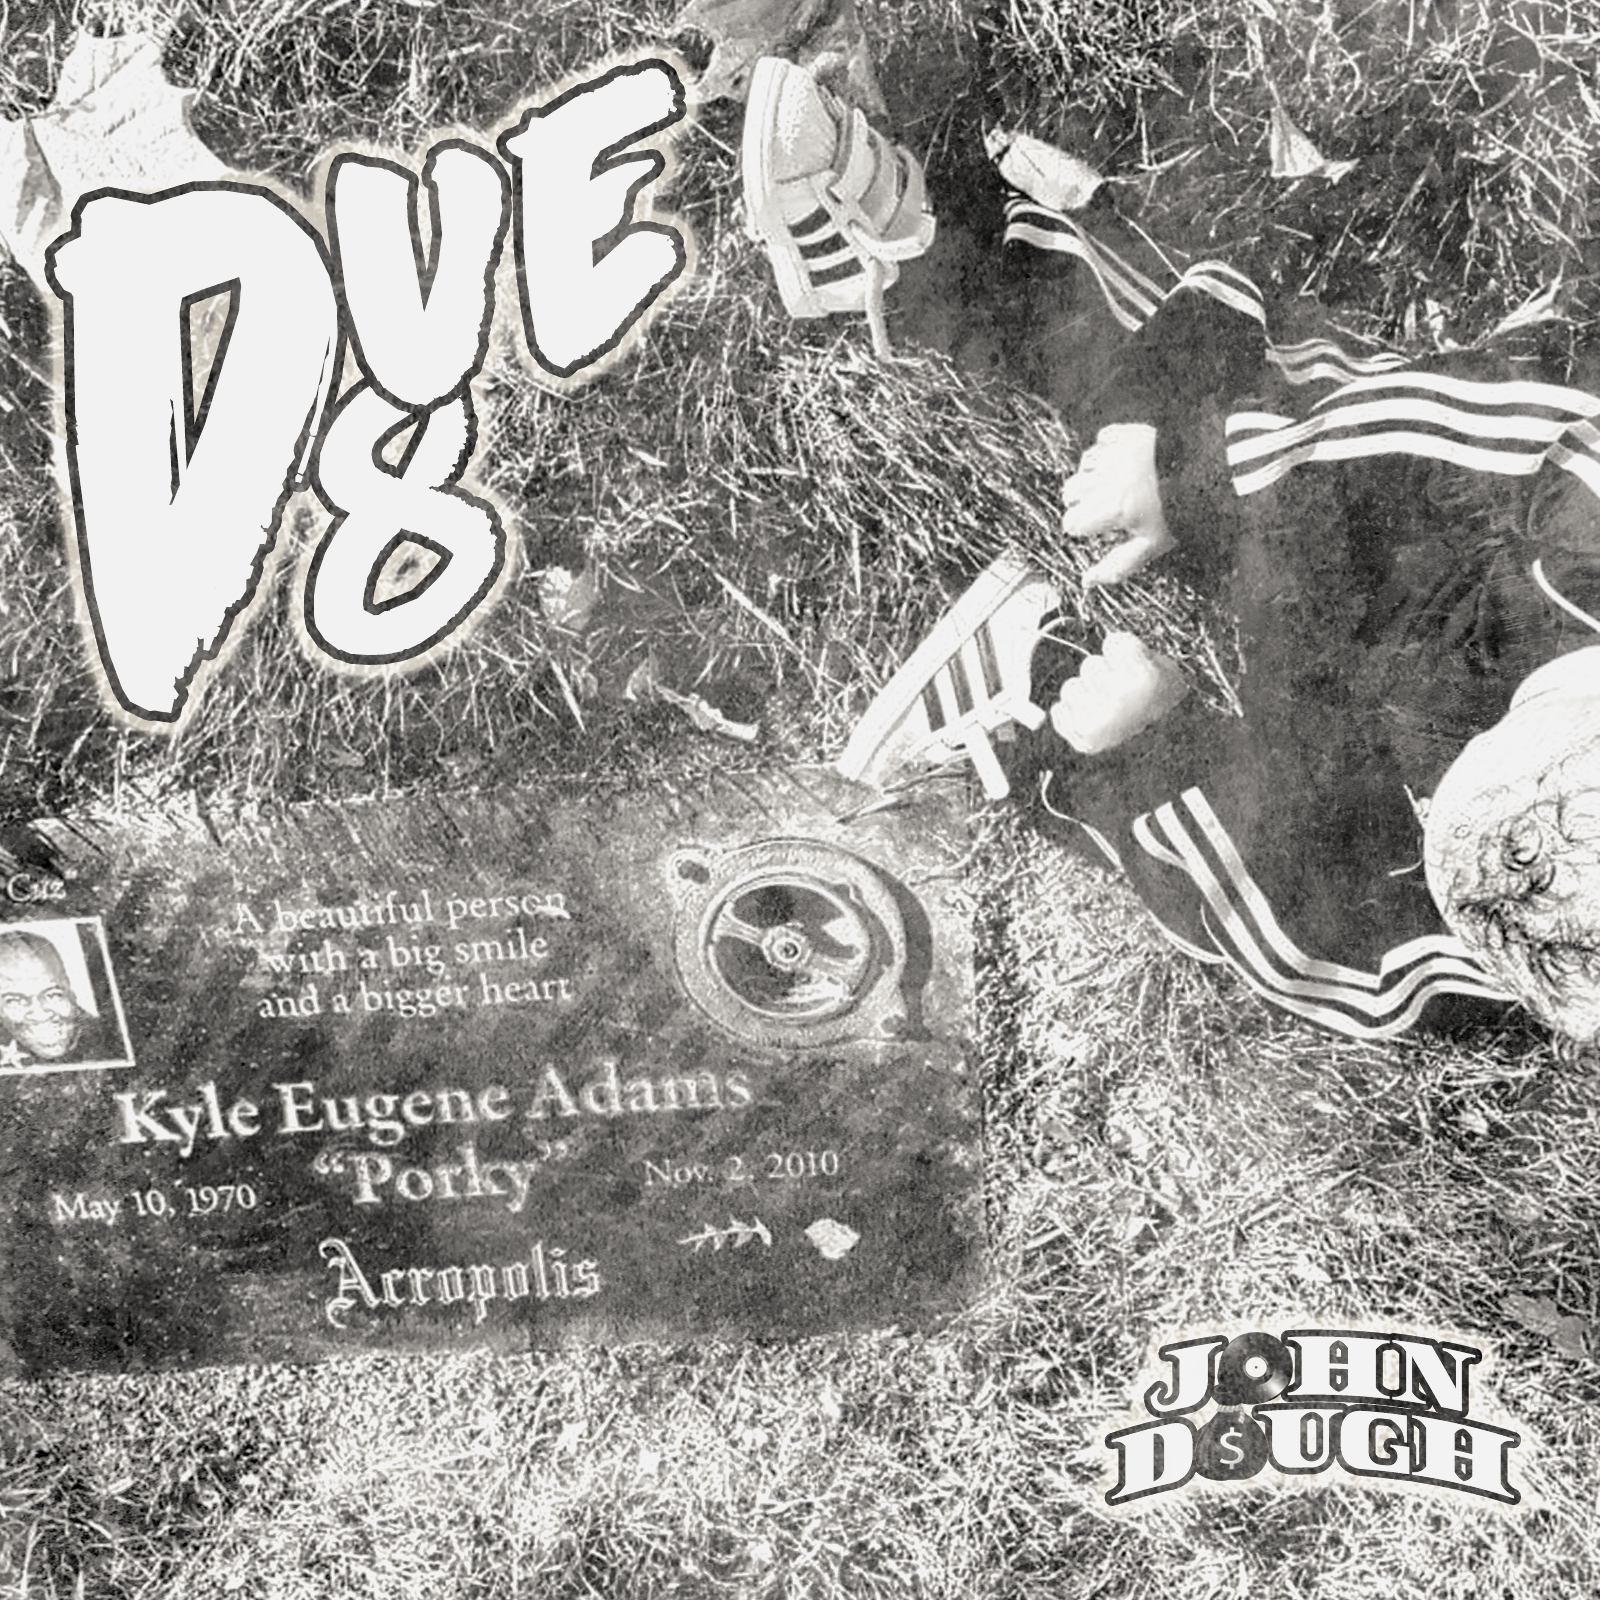 """Cover for """"Due D8"""" from John Dough 509 and Shao Sosa shows the headstone of Kyle Adams with a child sitting next to it."""